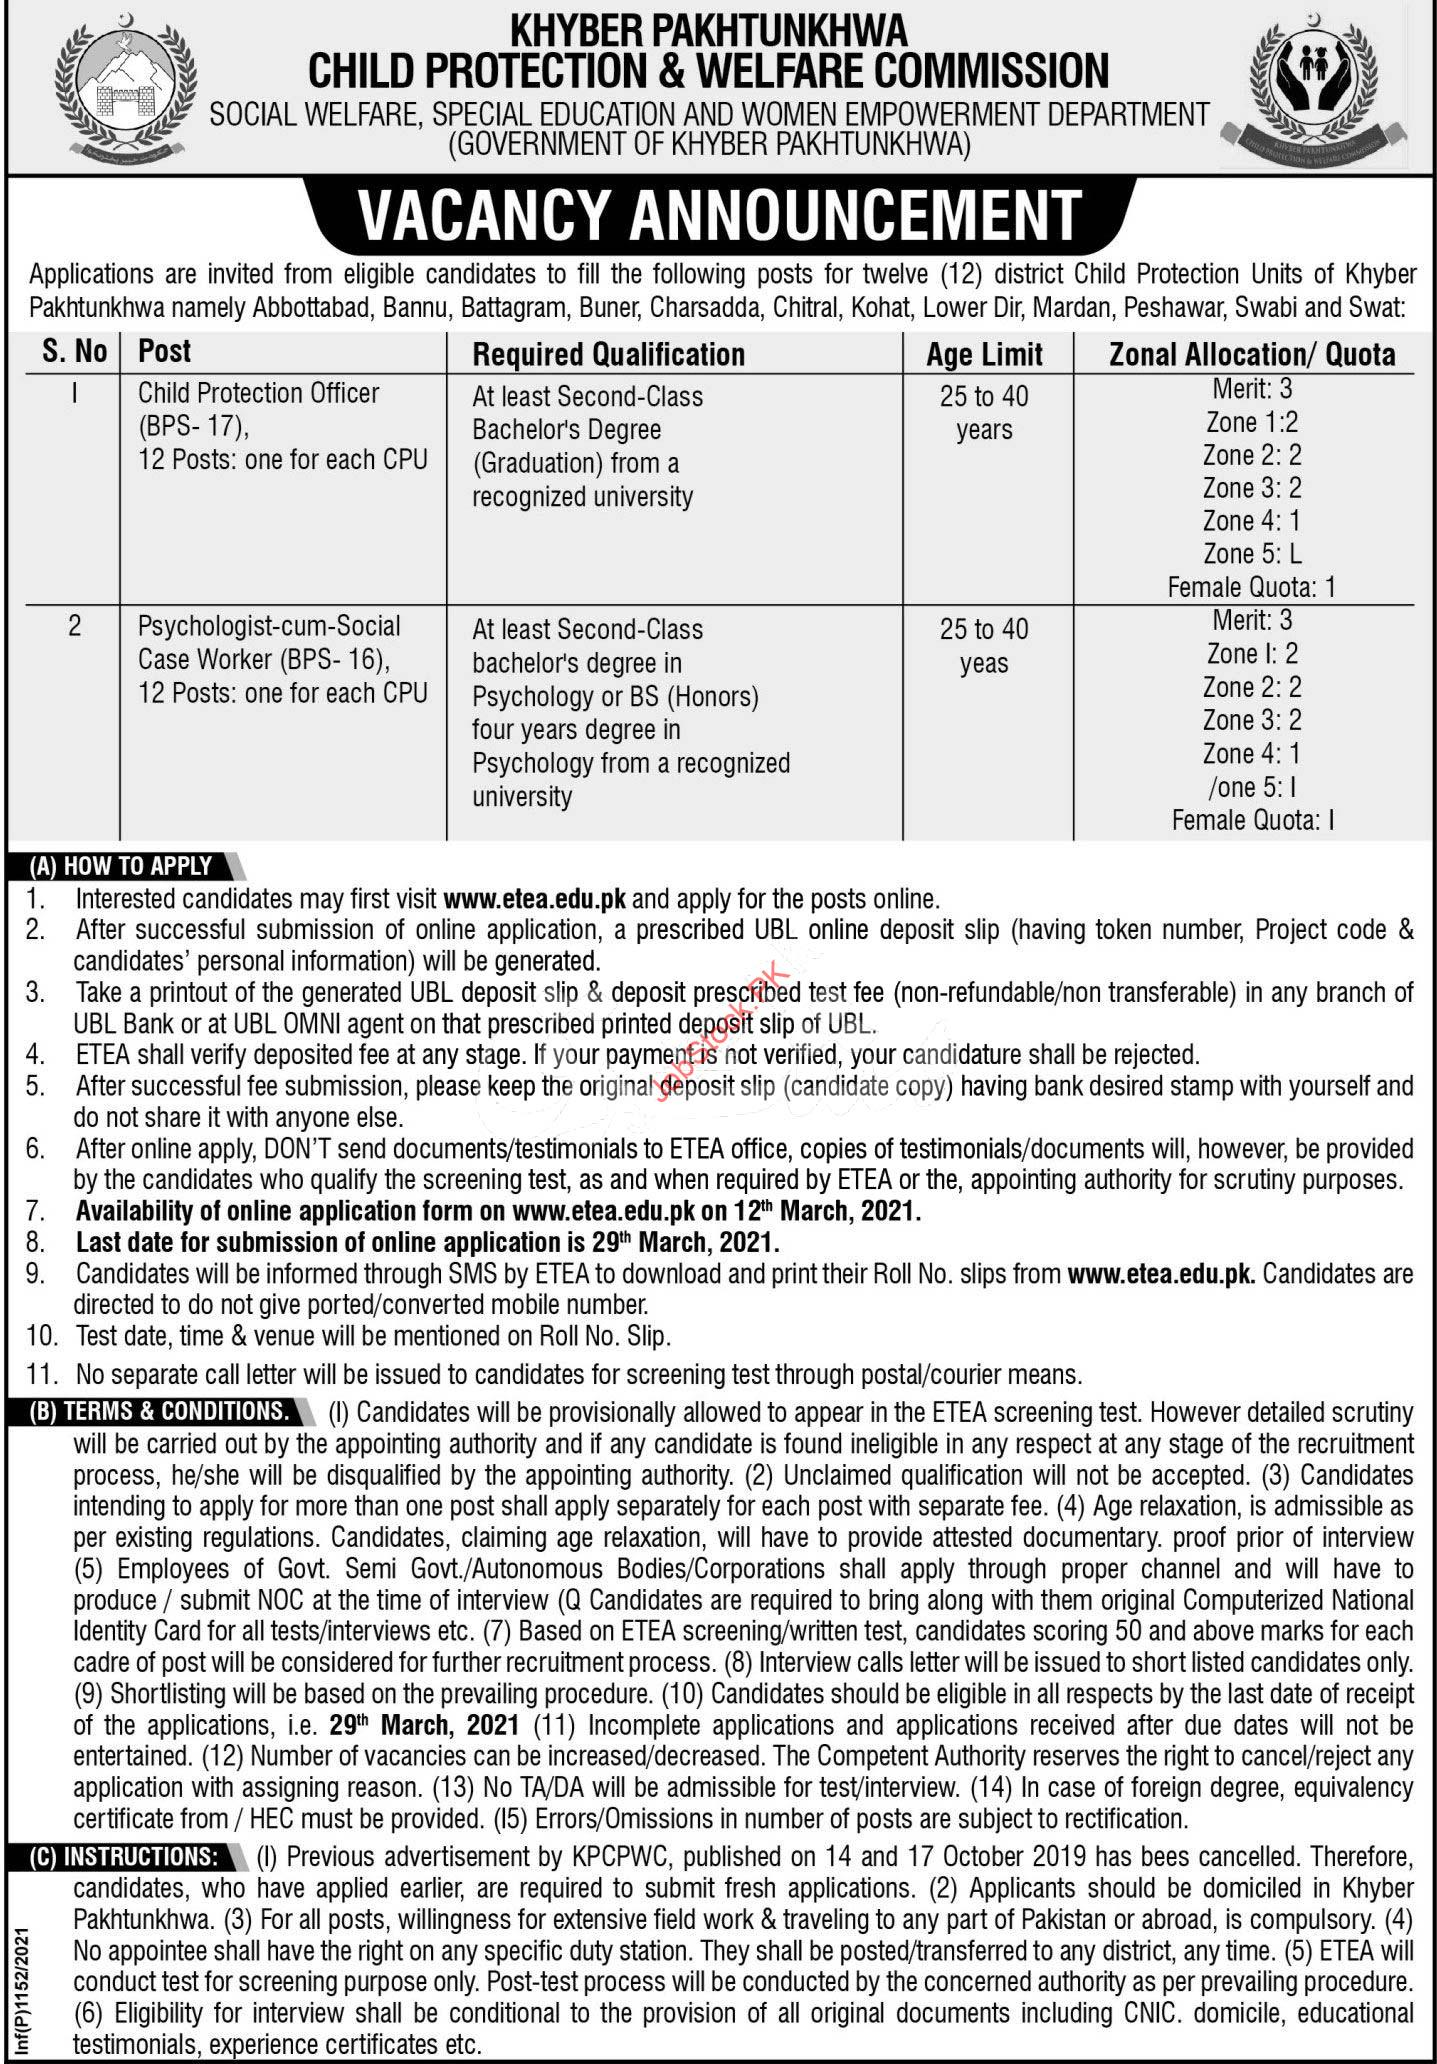 Child Protection & Welfare Commission Kpk Jobs 2021 March Latest